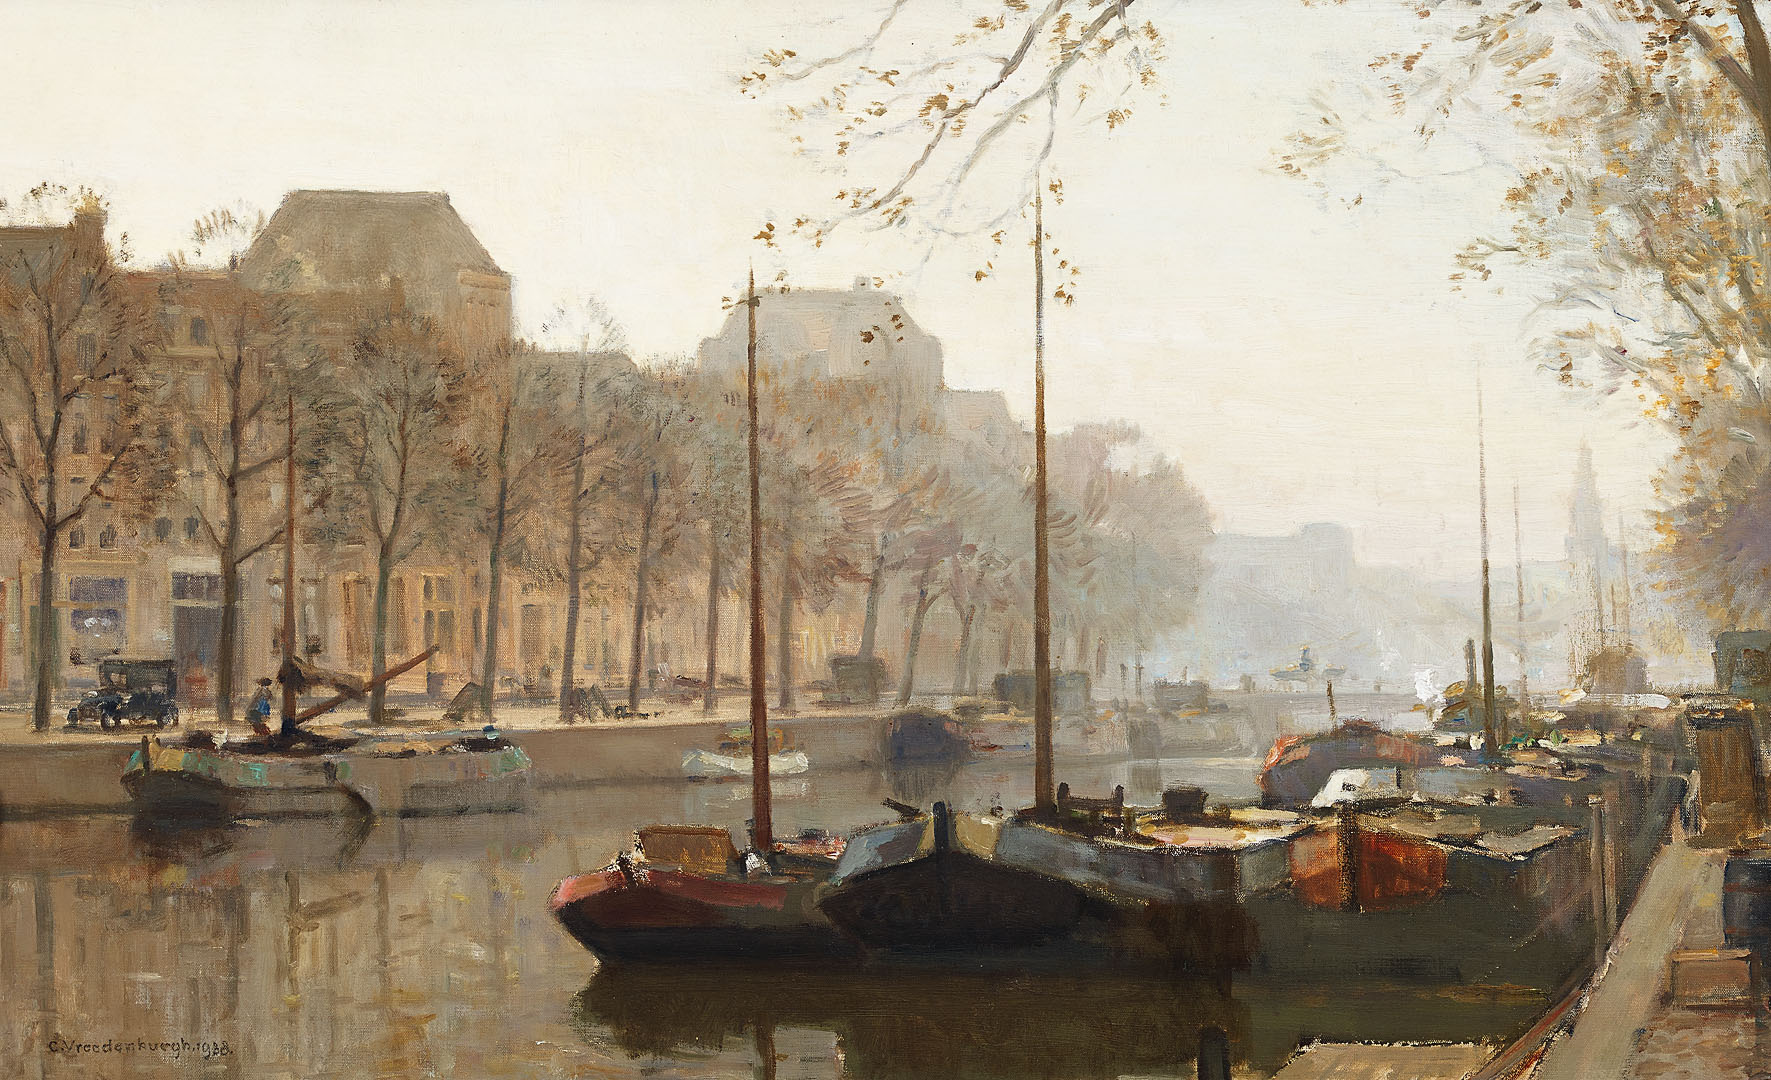 Boten in haven, 1938 Cornelis Vreedenburgh (1880-1946) - Kunsthandel Studio 2000